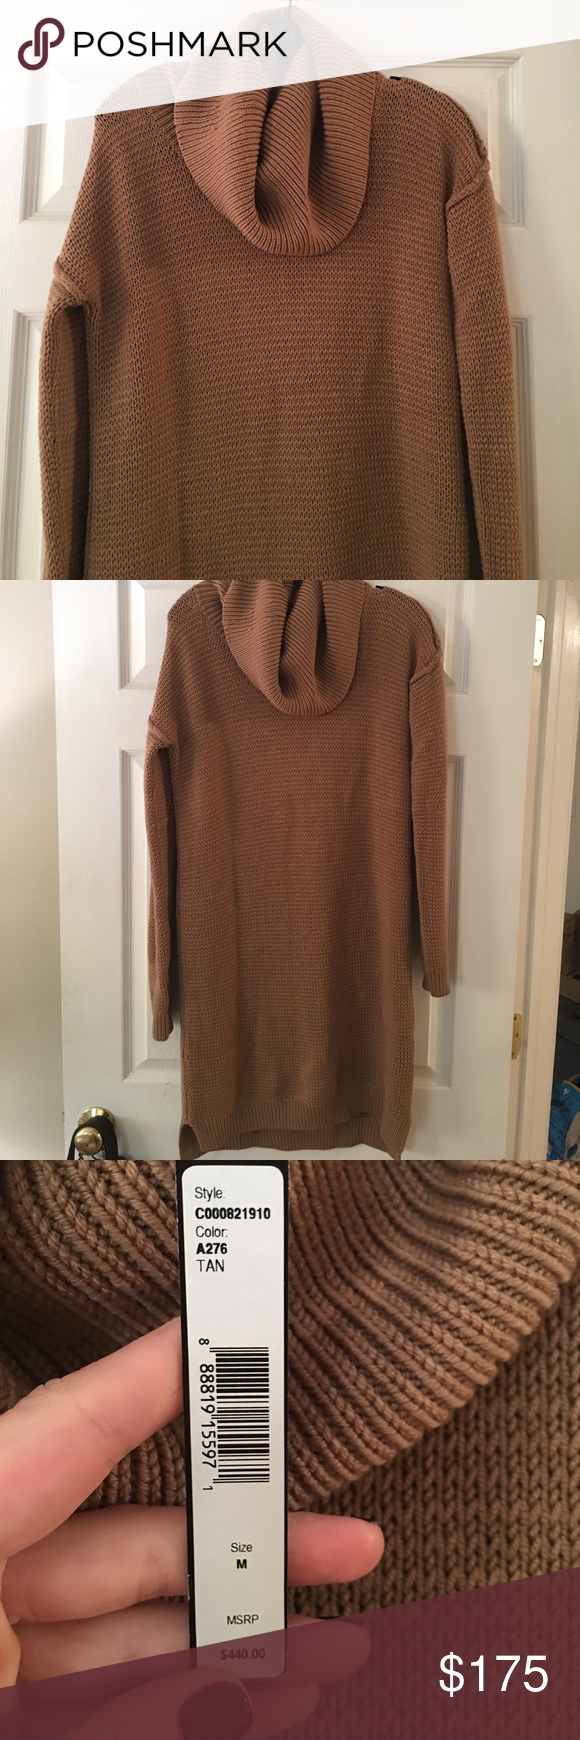 Camel Colored Sweater Black White Striped Scarf Leggings Brown Boots